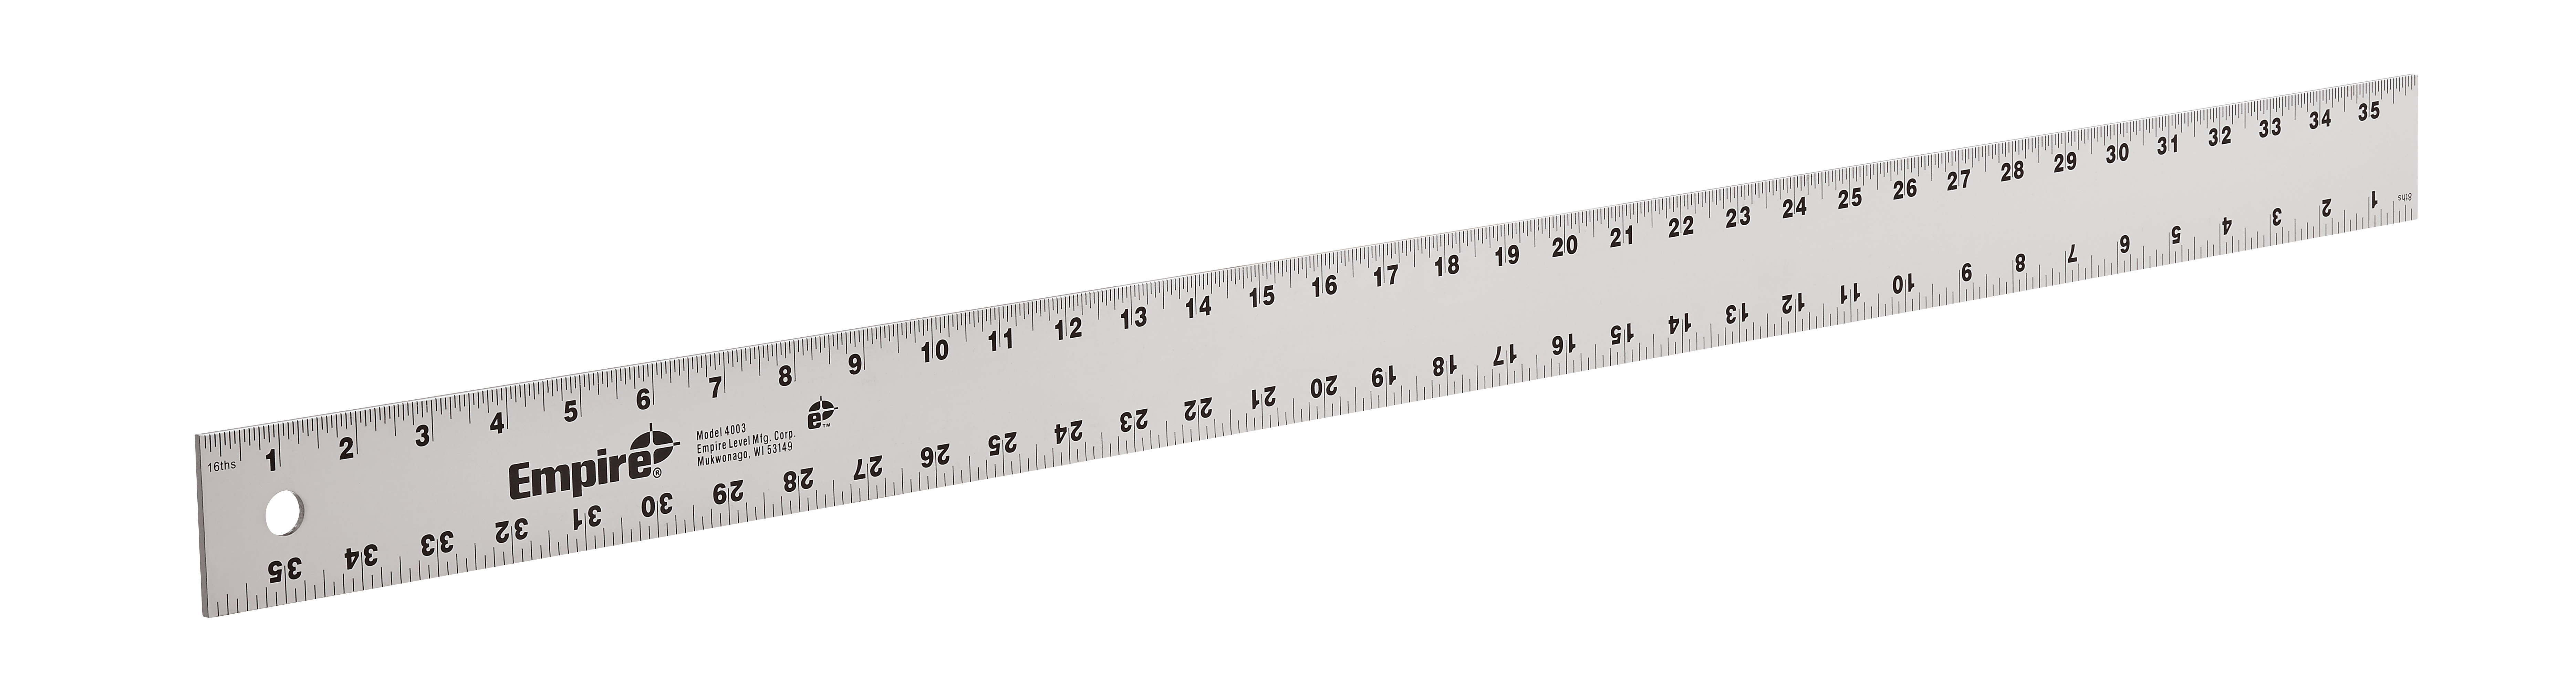 Milwaukee® Empire® 4003 Heavy Duty Straight Edge Ruler, Imperial Measuring System, Graduations 1/16 in, Aluminum